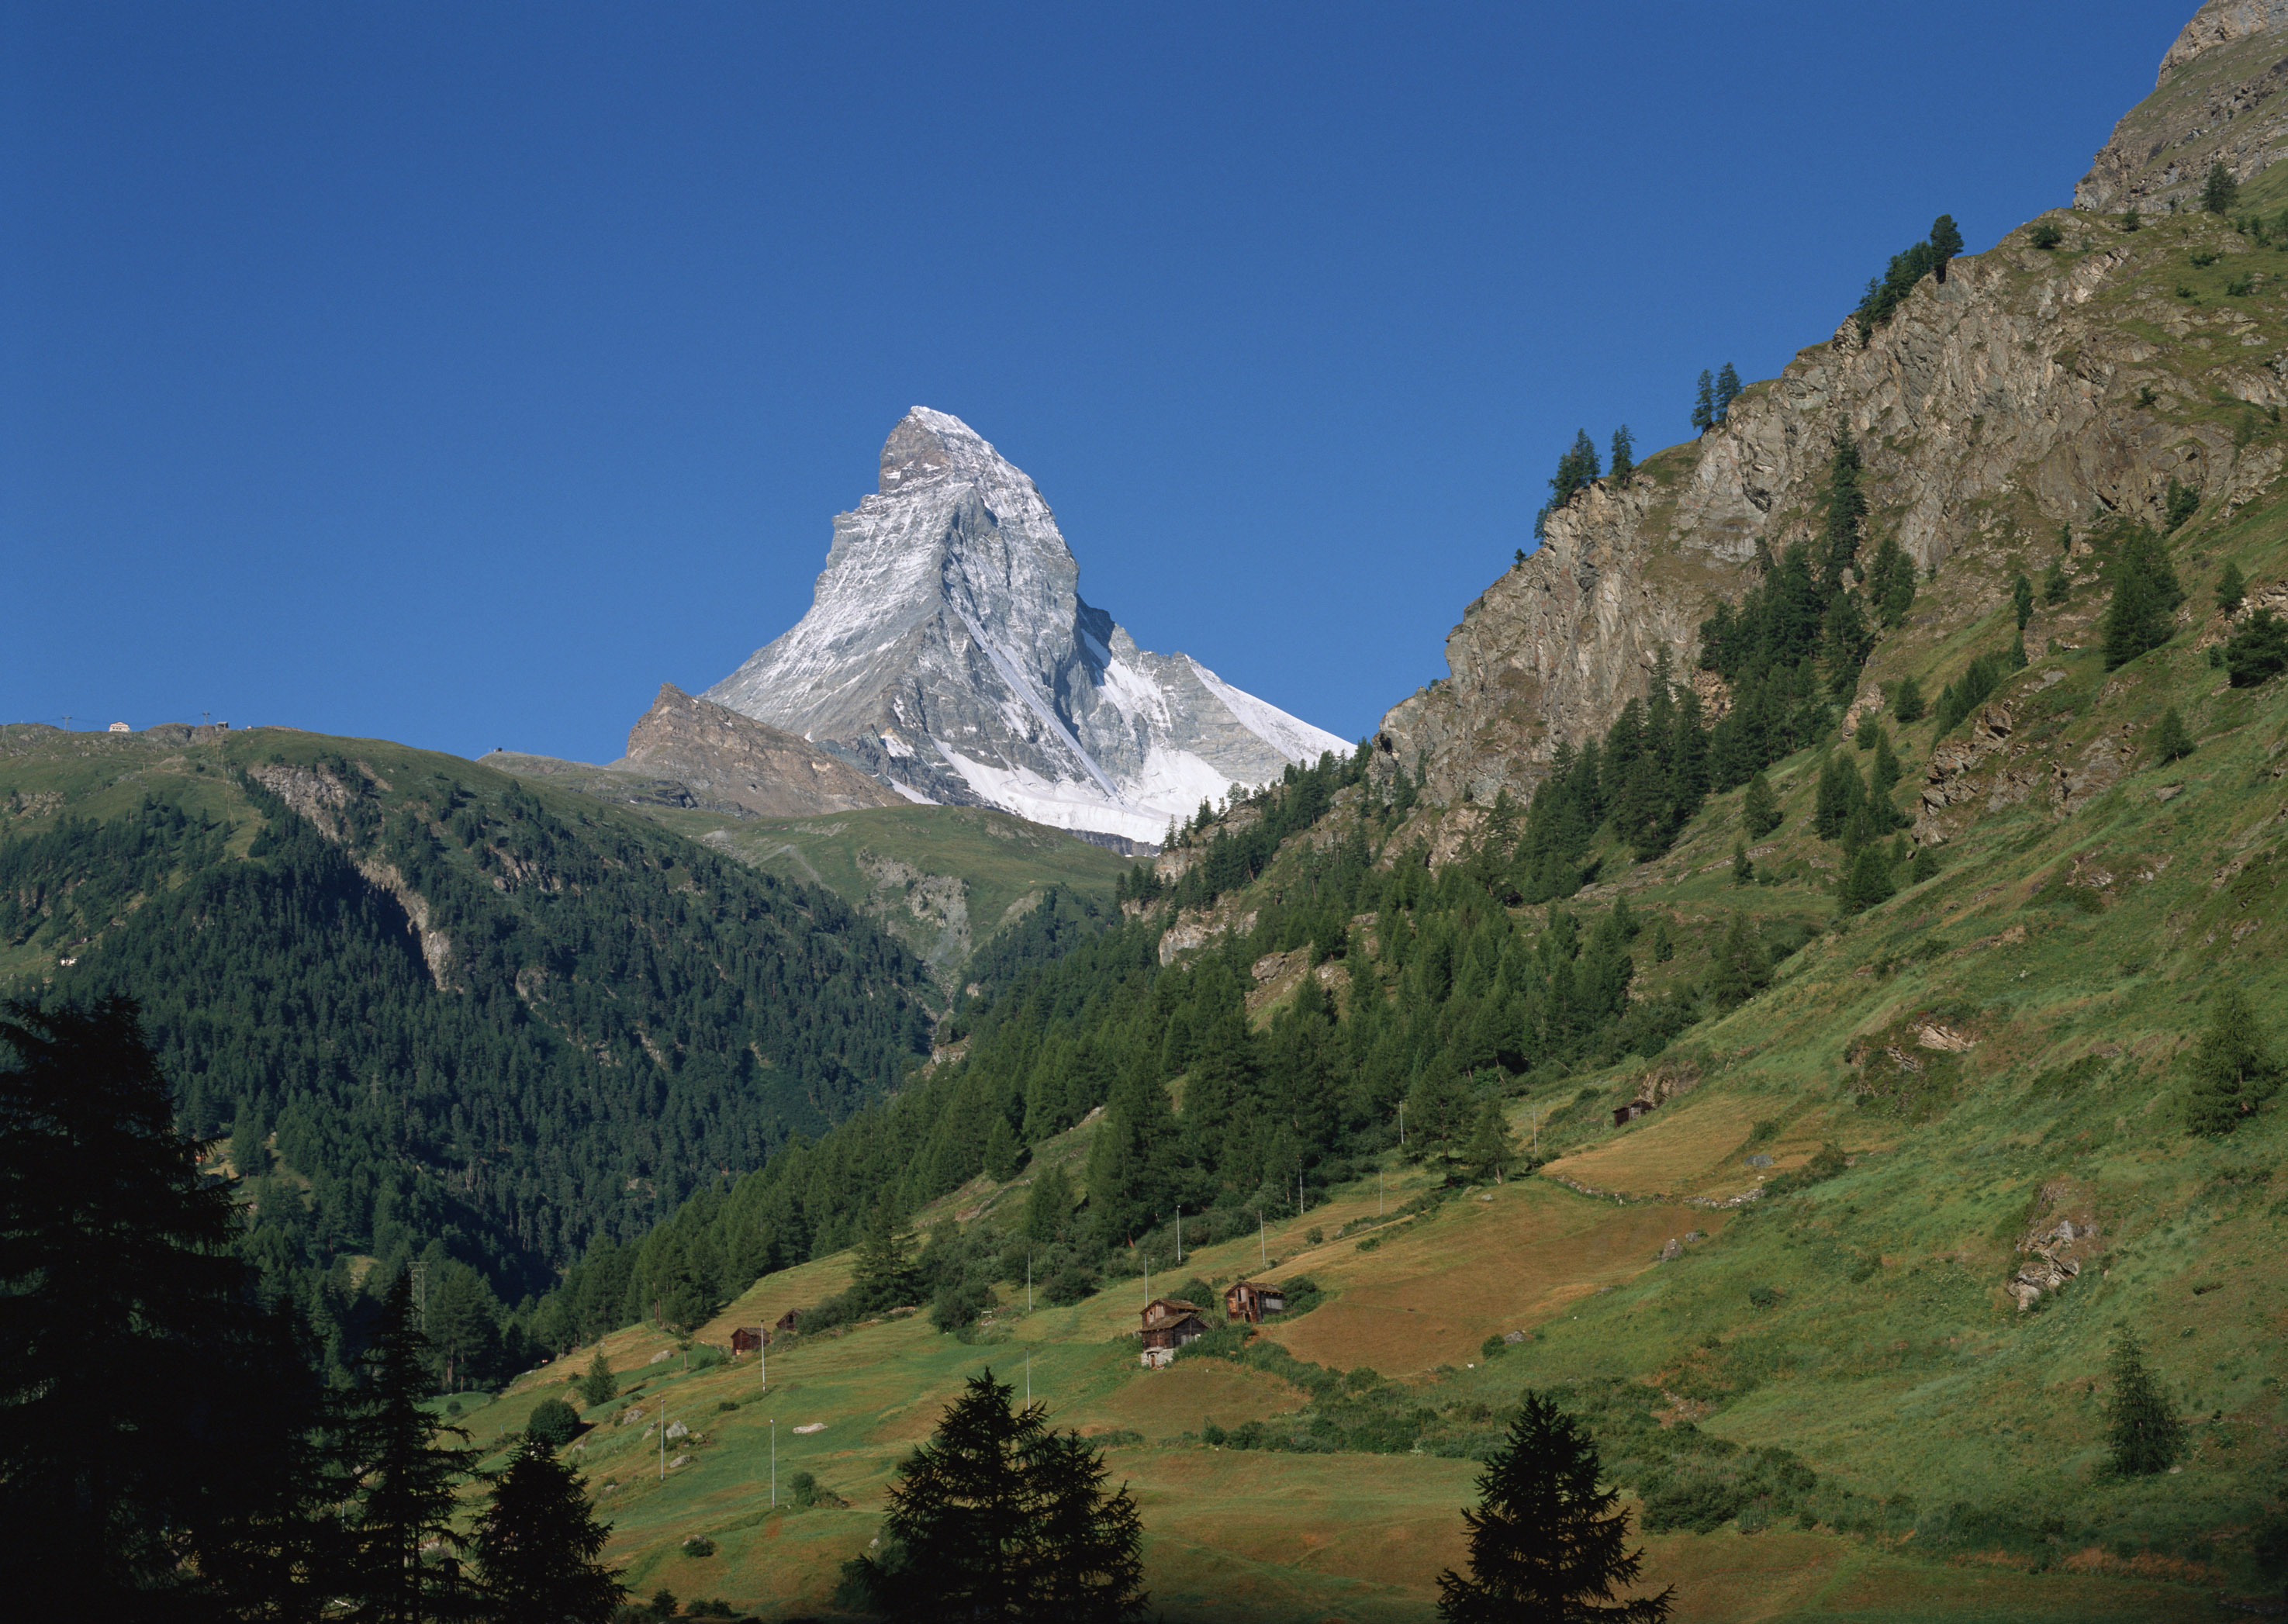 Free download high resolution image - free image free photo free stock image public domain picture -views of the Matterhorn - Swiss Alps